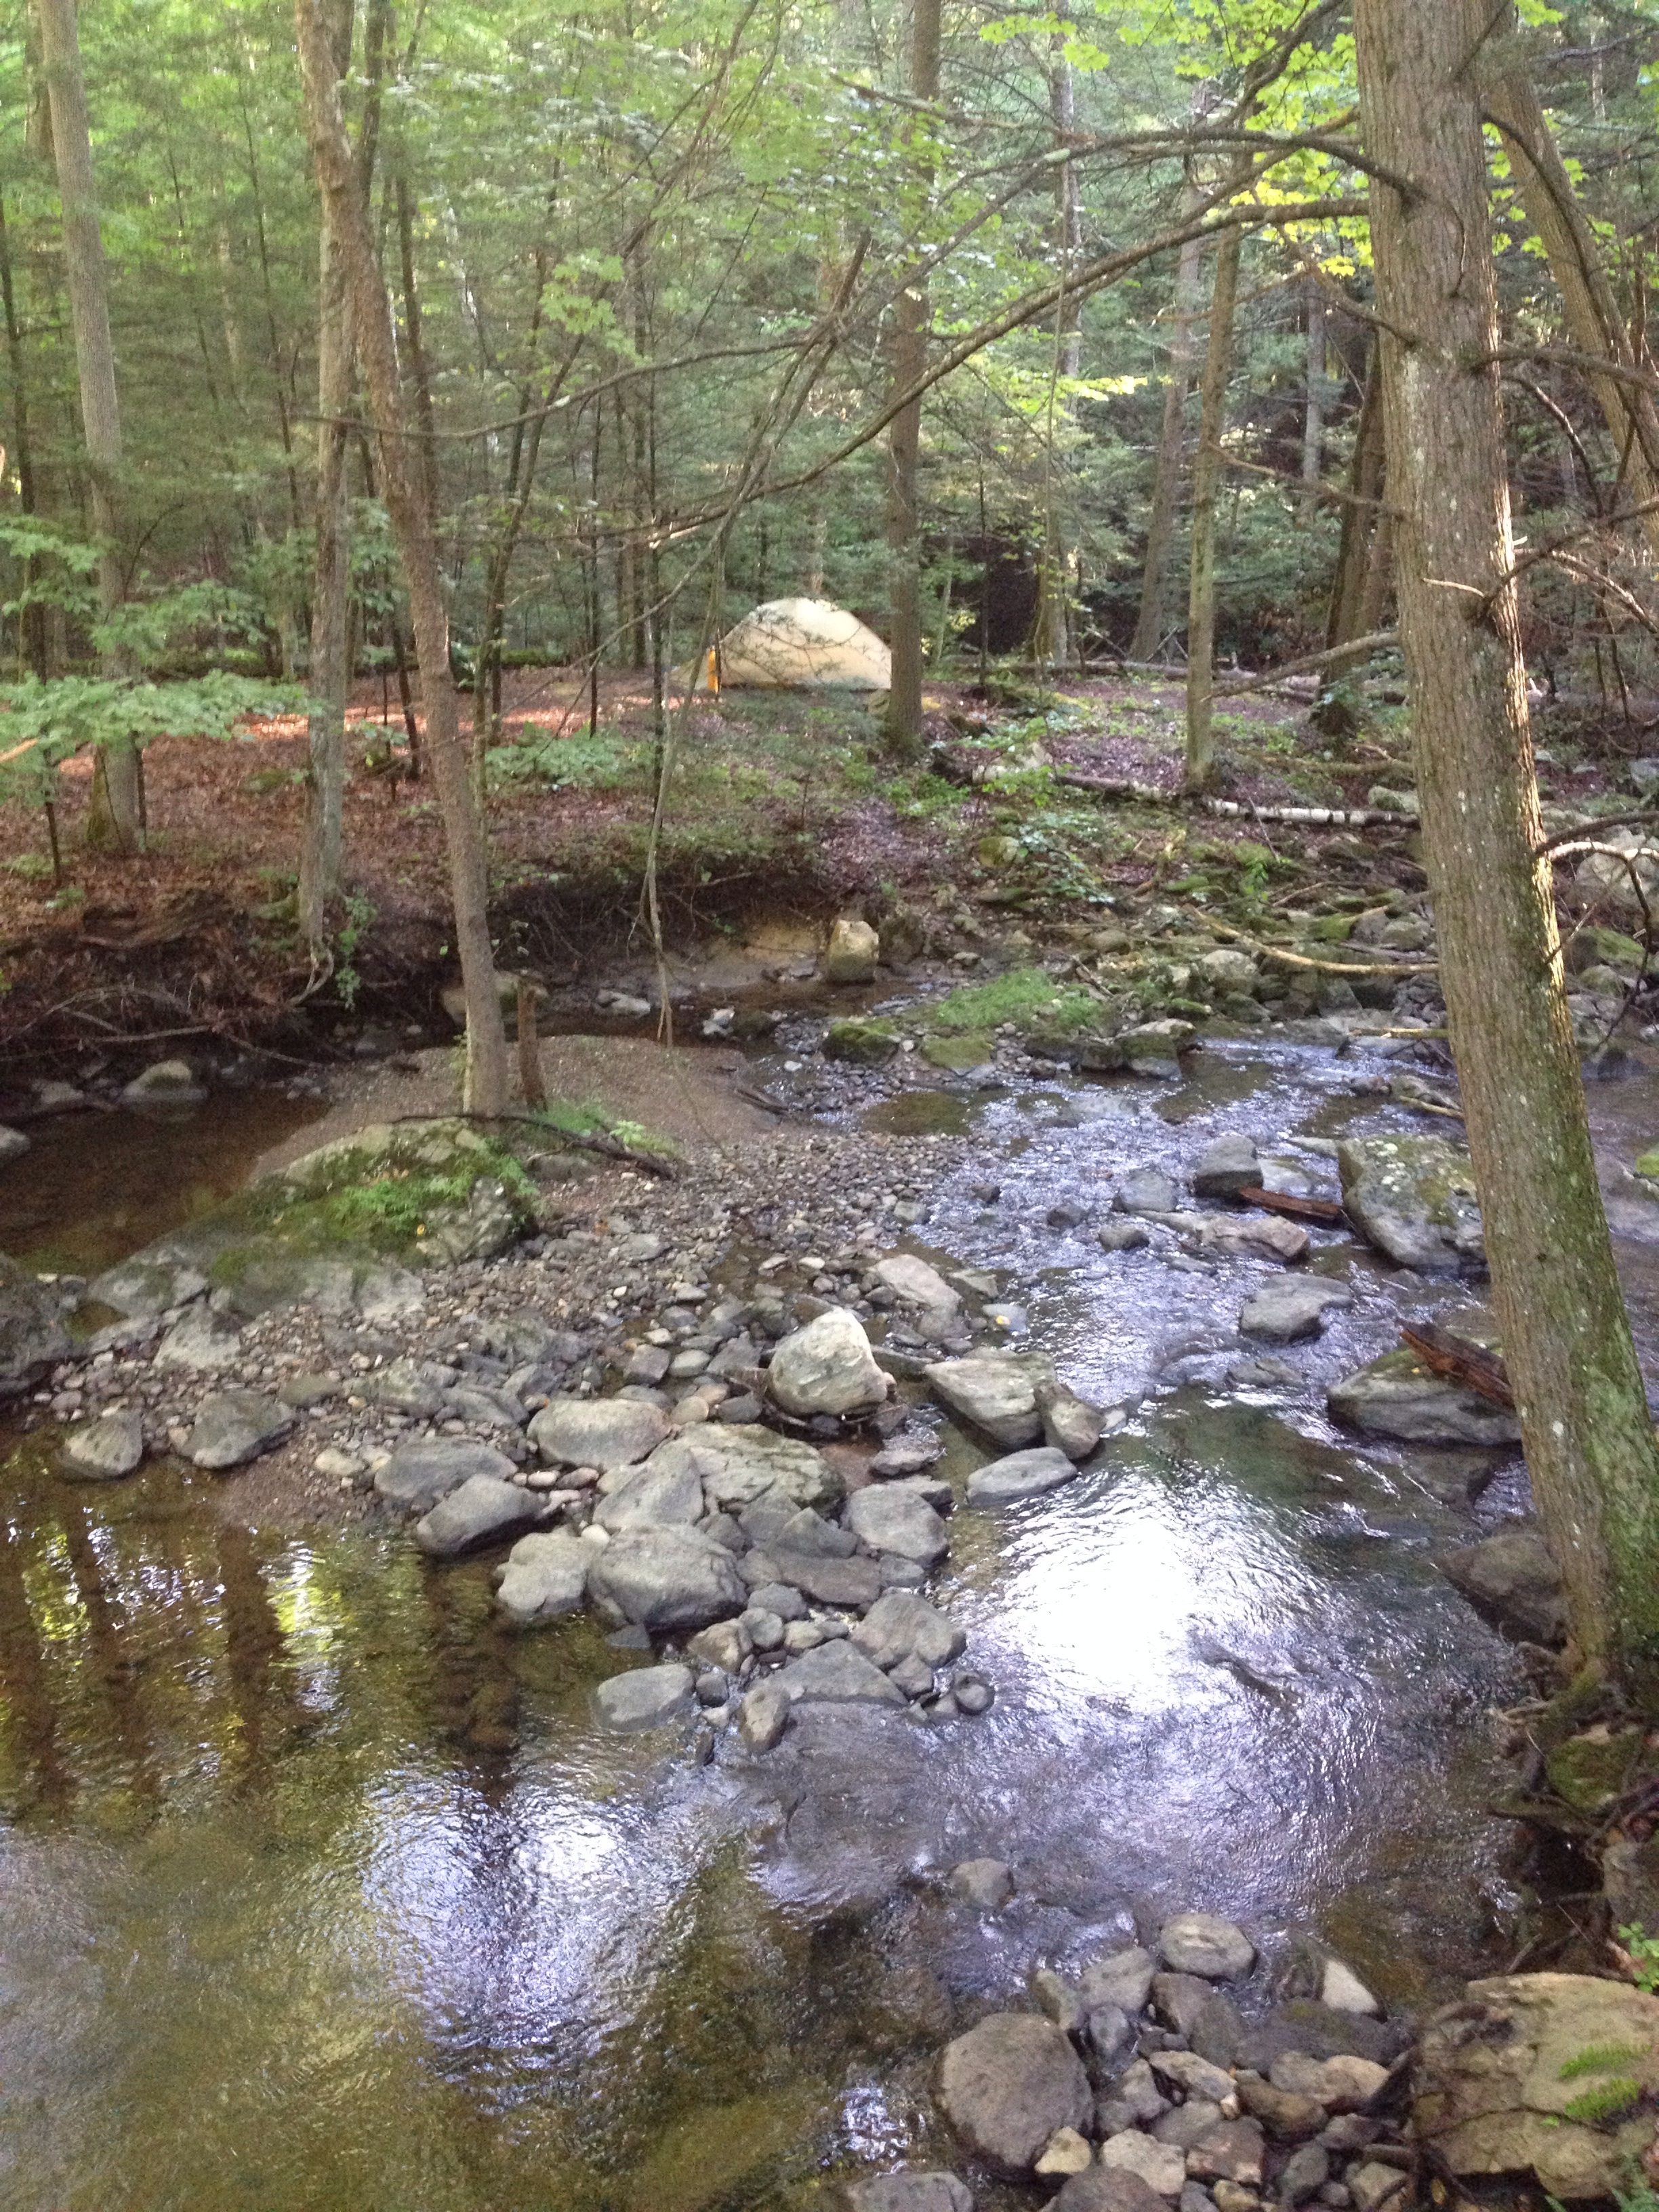 One of my favorite campsites in northern New York.